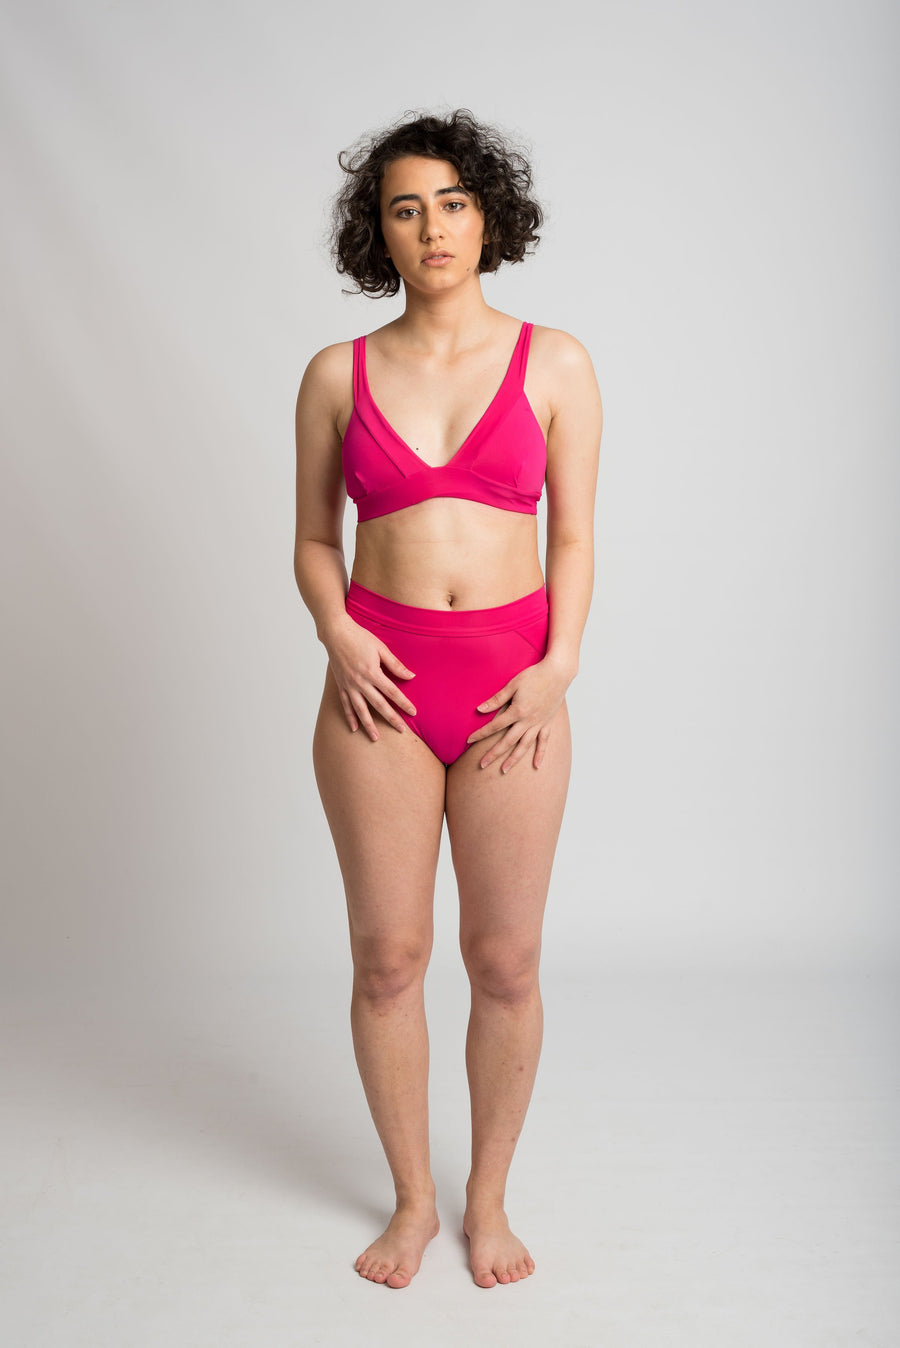 Ethical and sustainable swimwear for women xxs to plus size, recycled ECONYL bikini top ethically made in Australia.